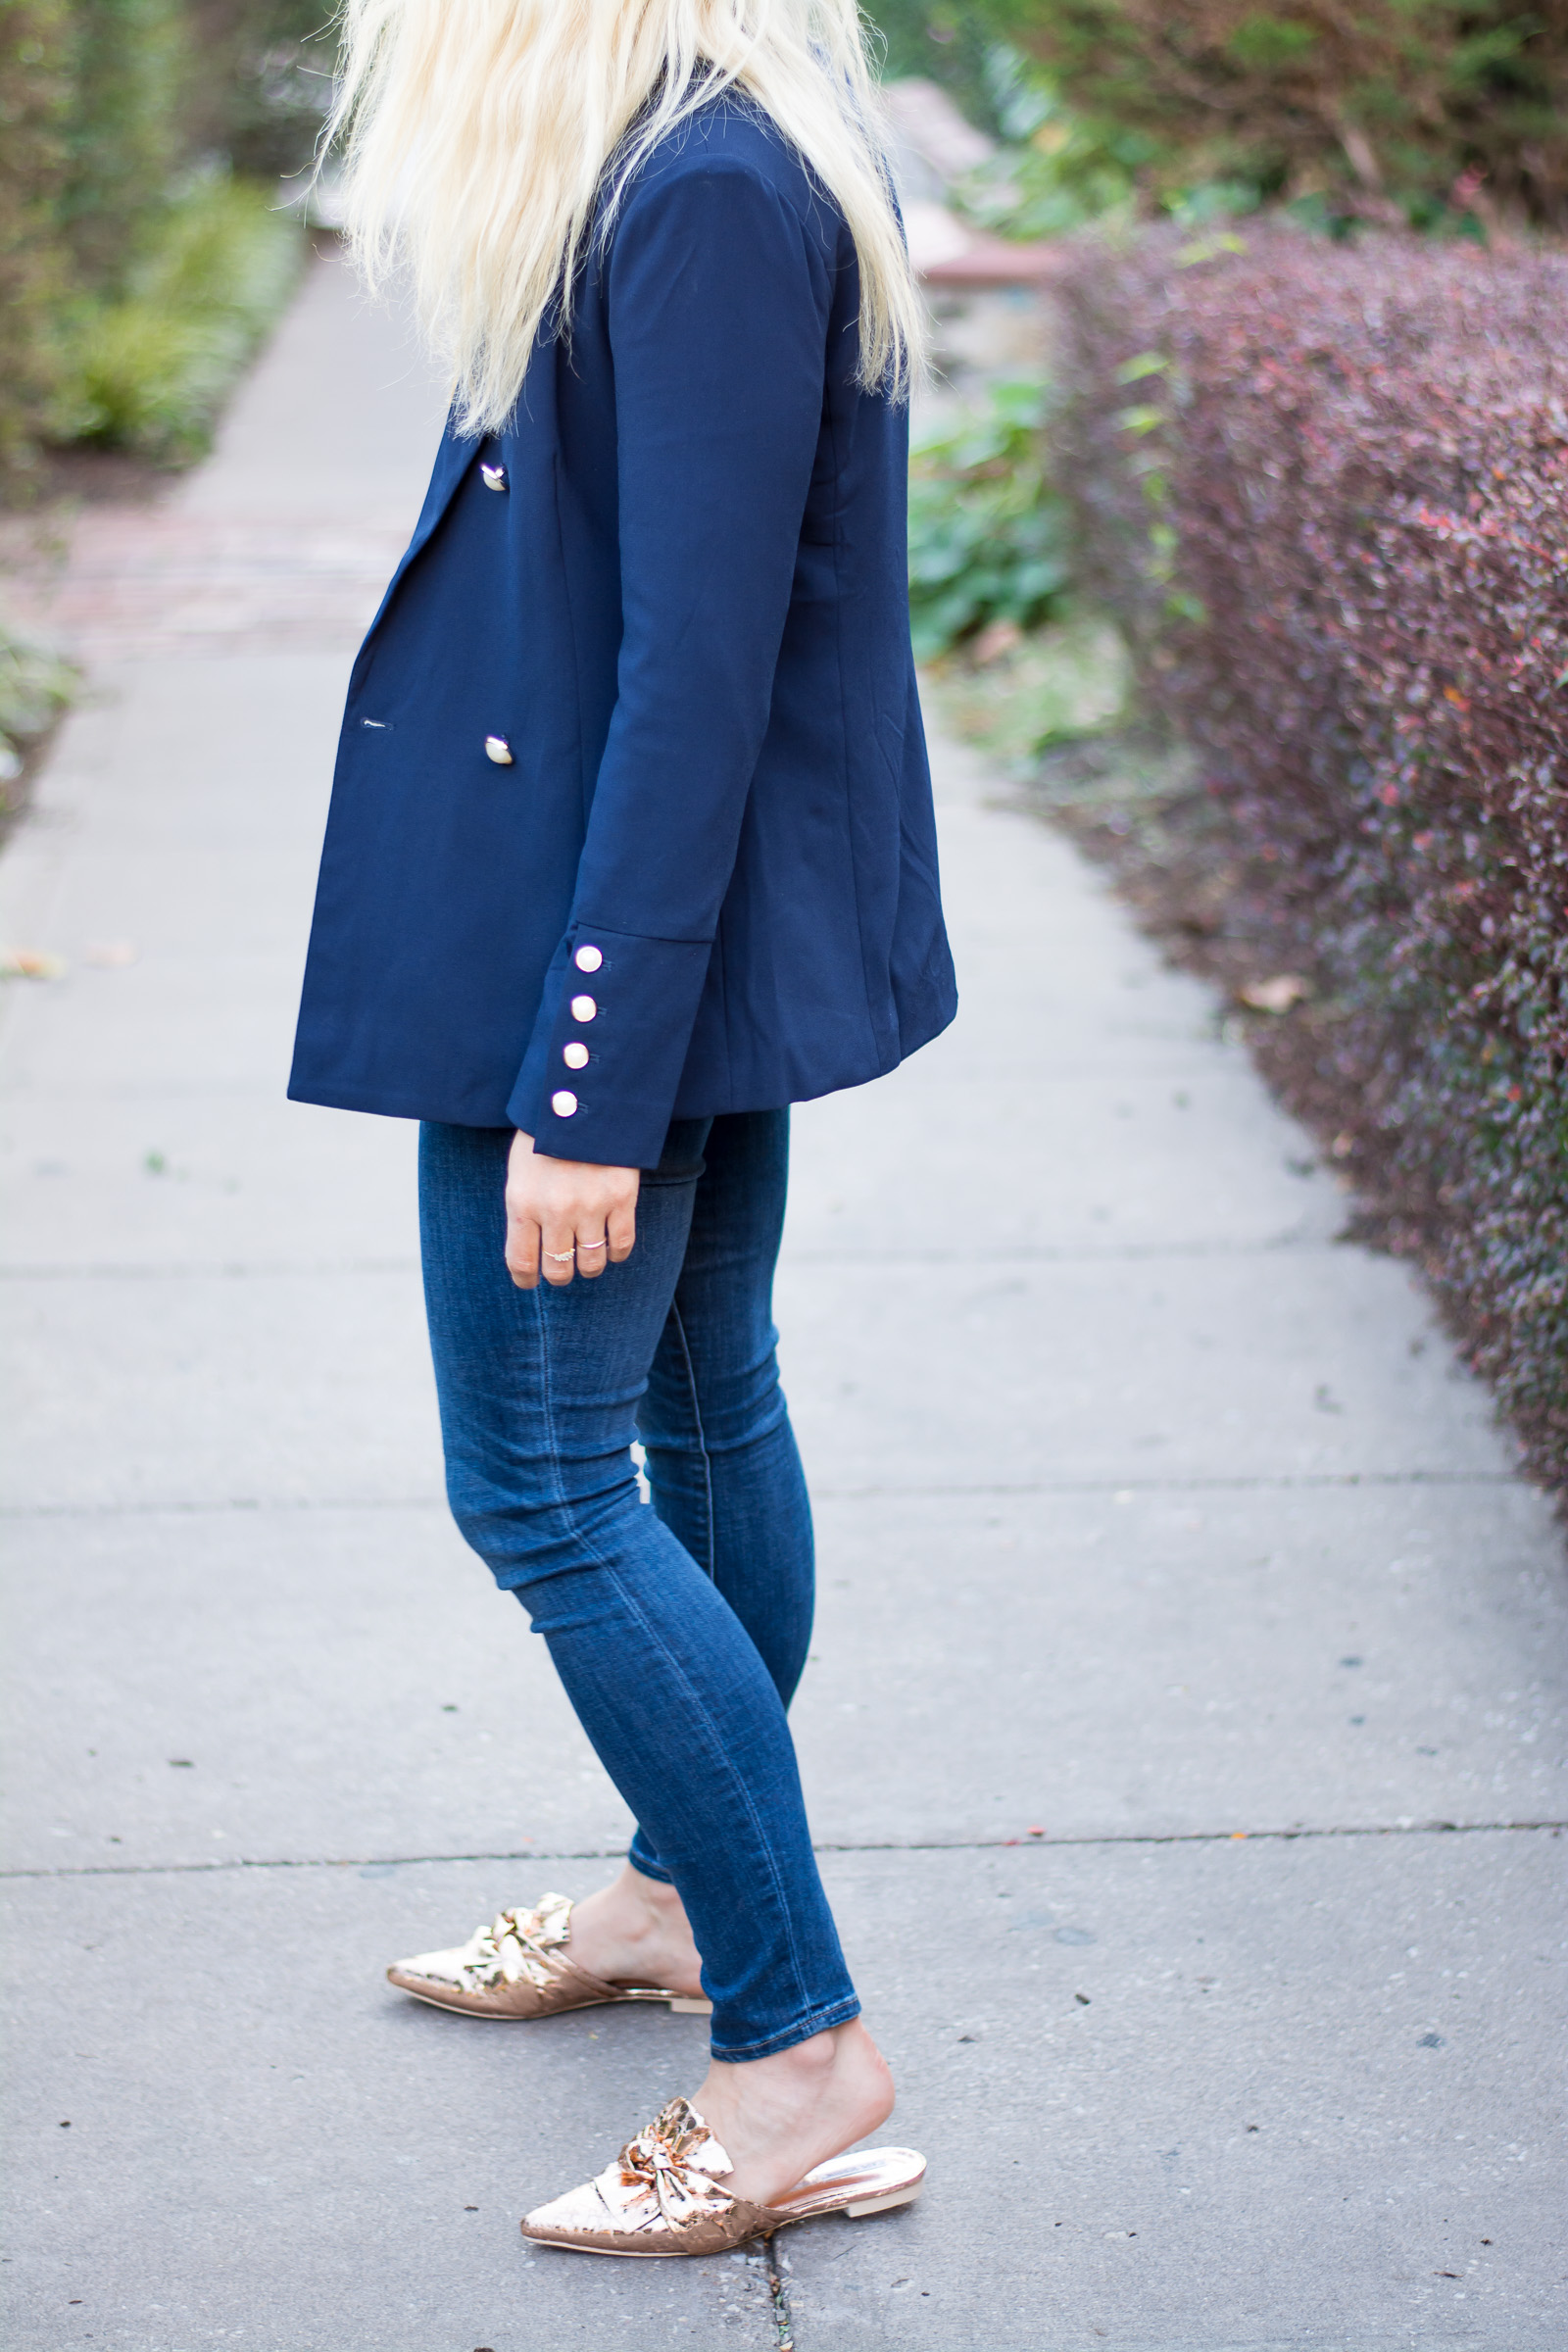 How to Remix Your Jeans and Sweater. | Ashley from LSR